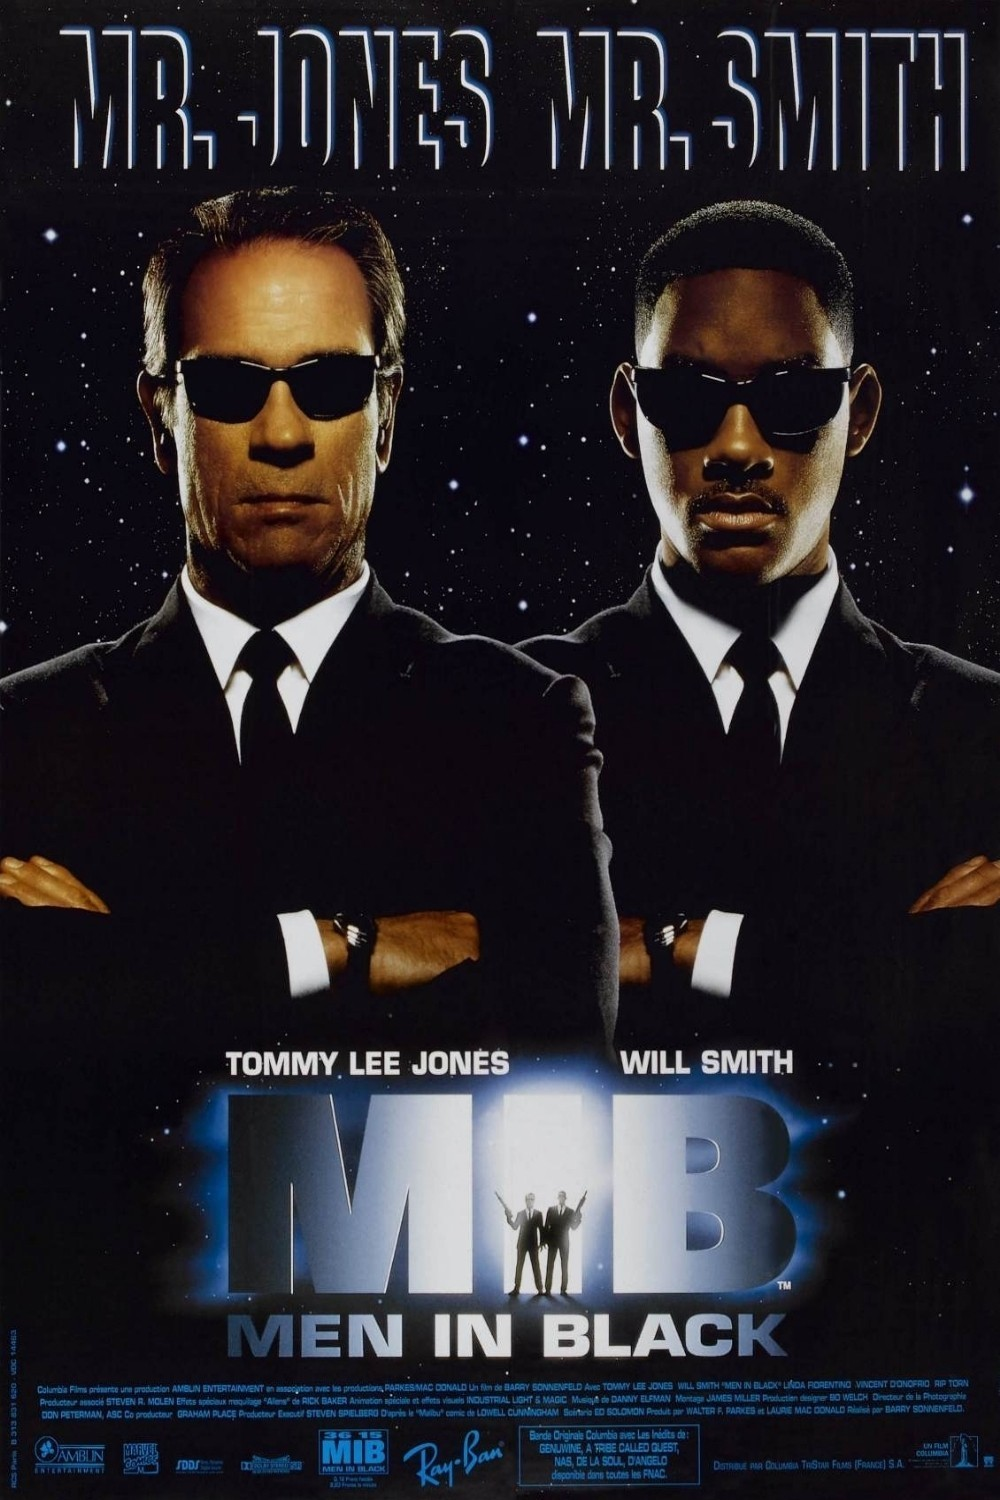 Men-in-black-1997-Film